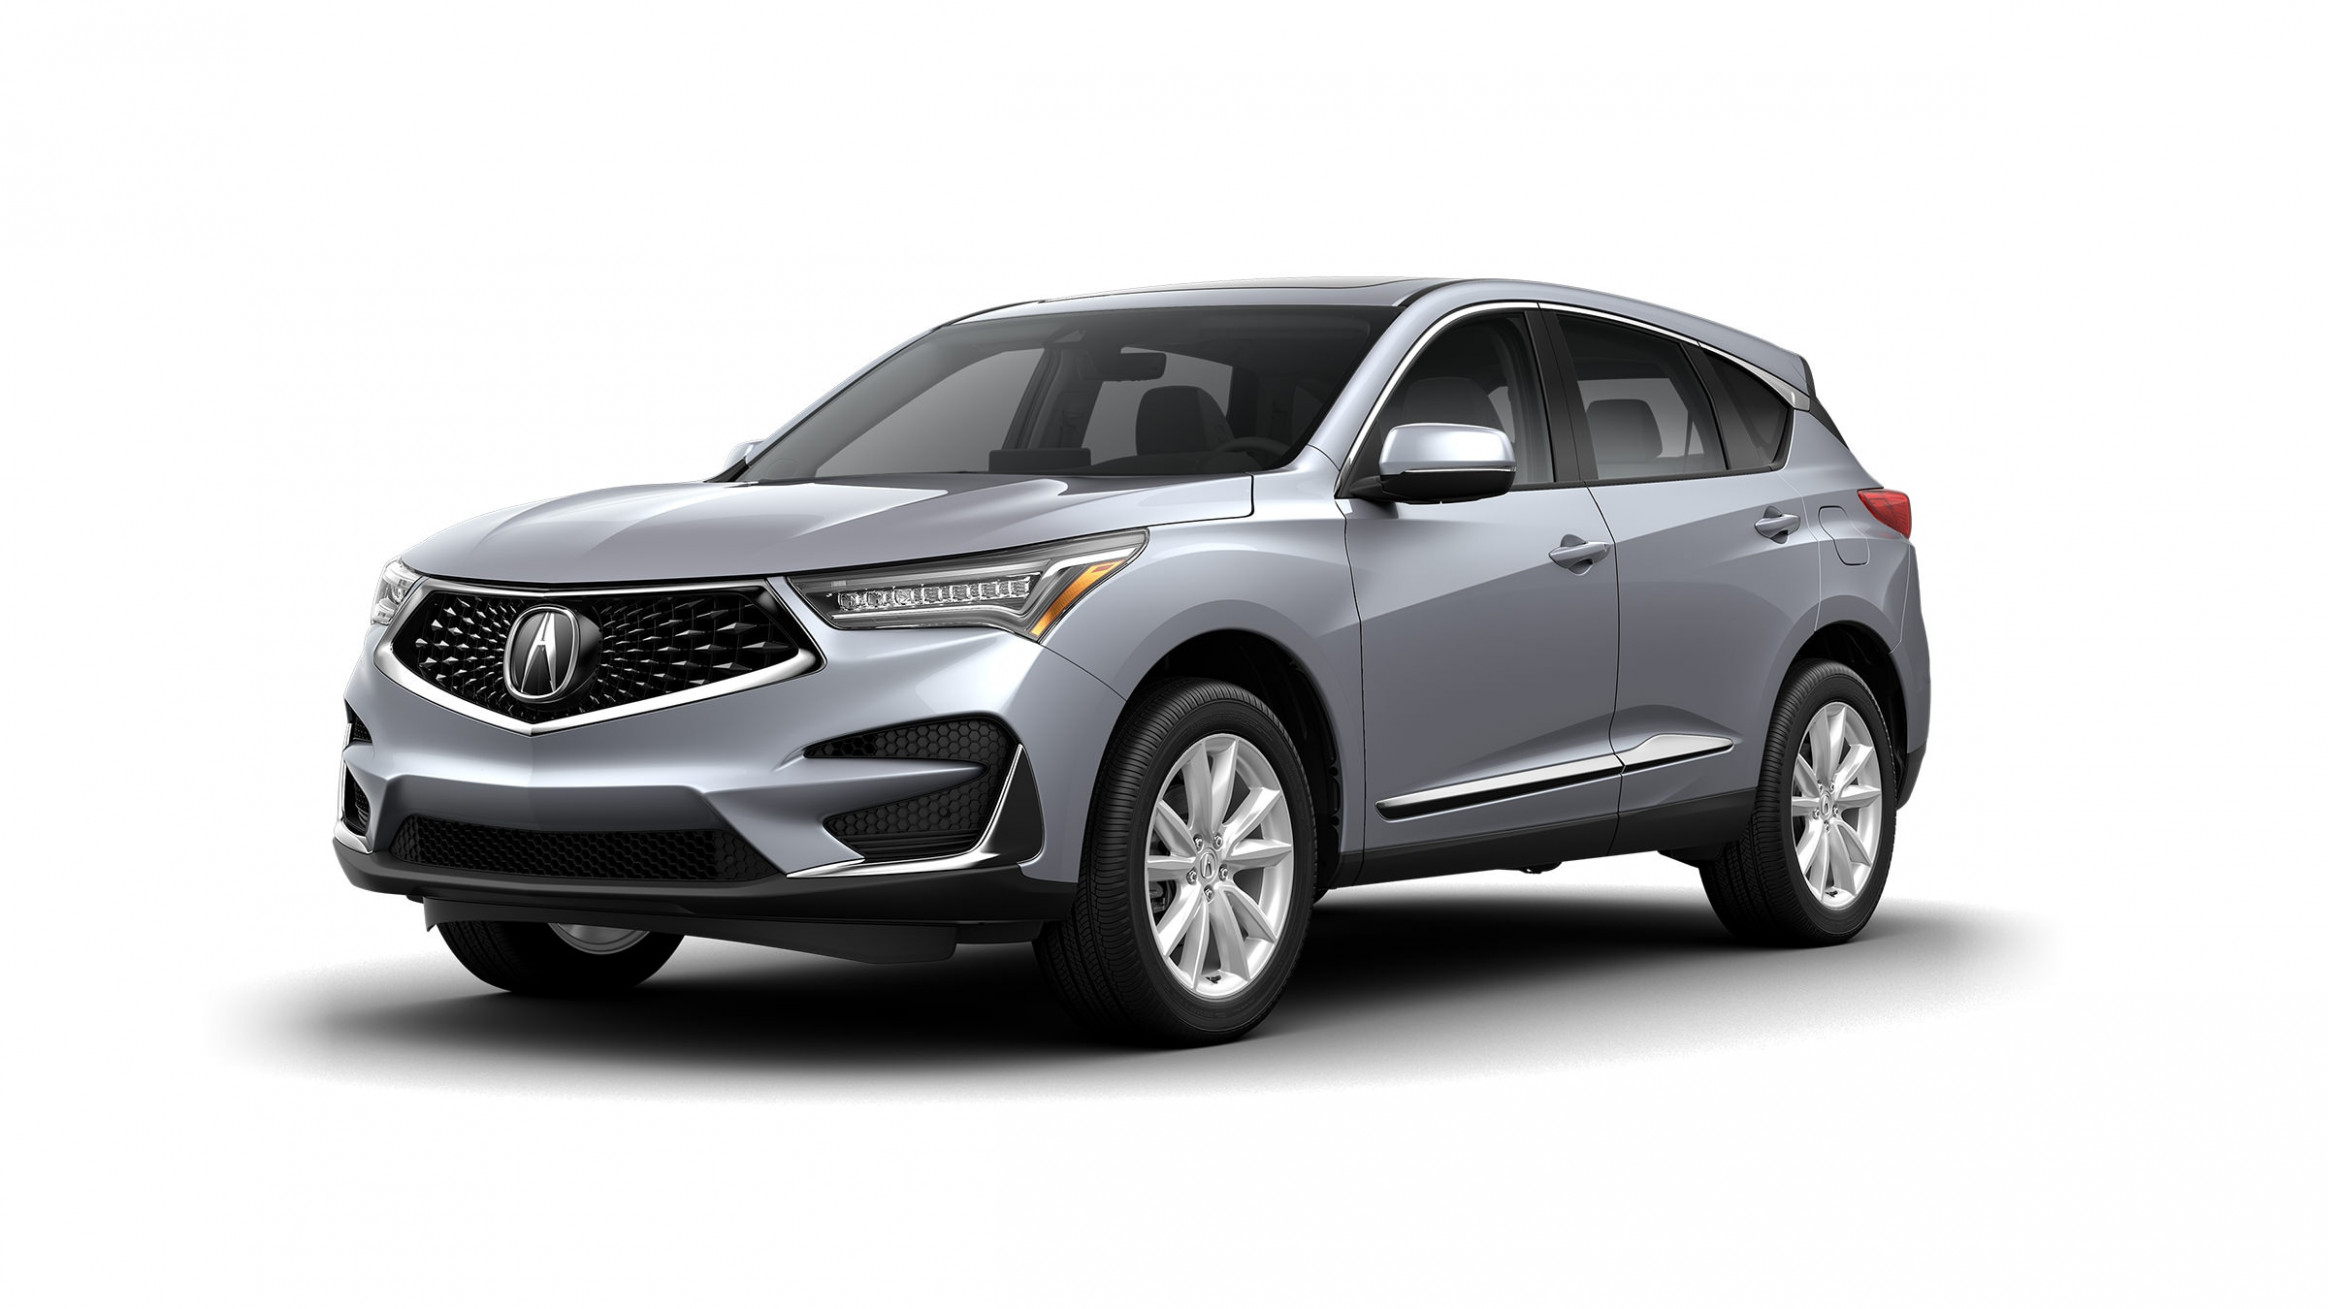 Acura Lease Offers & Deals   All Vehicles   Acura.com